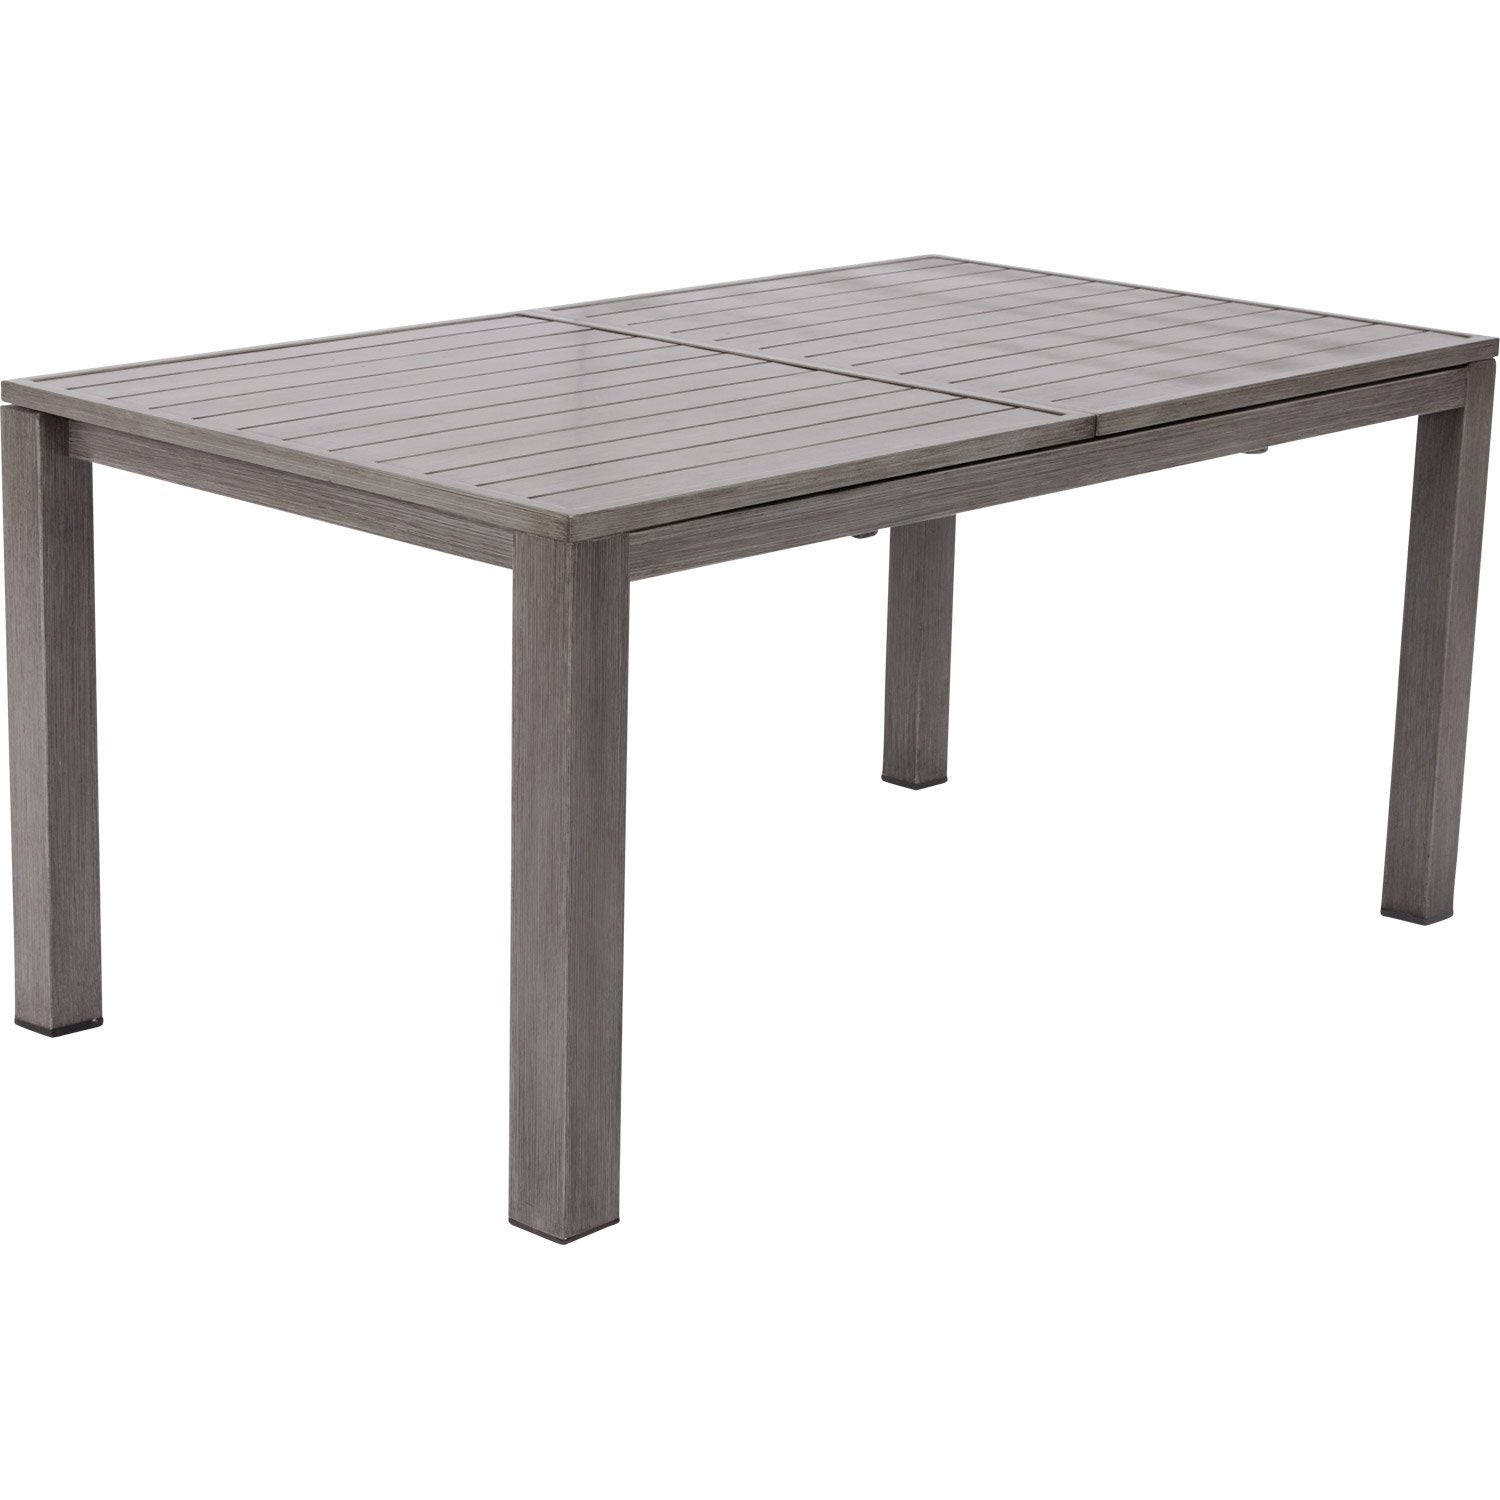 Table de jardin naterial antibes rectangulaire gris look for Table rectangulaire bois avec allonges